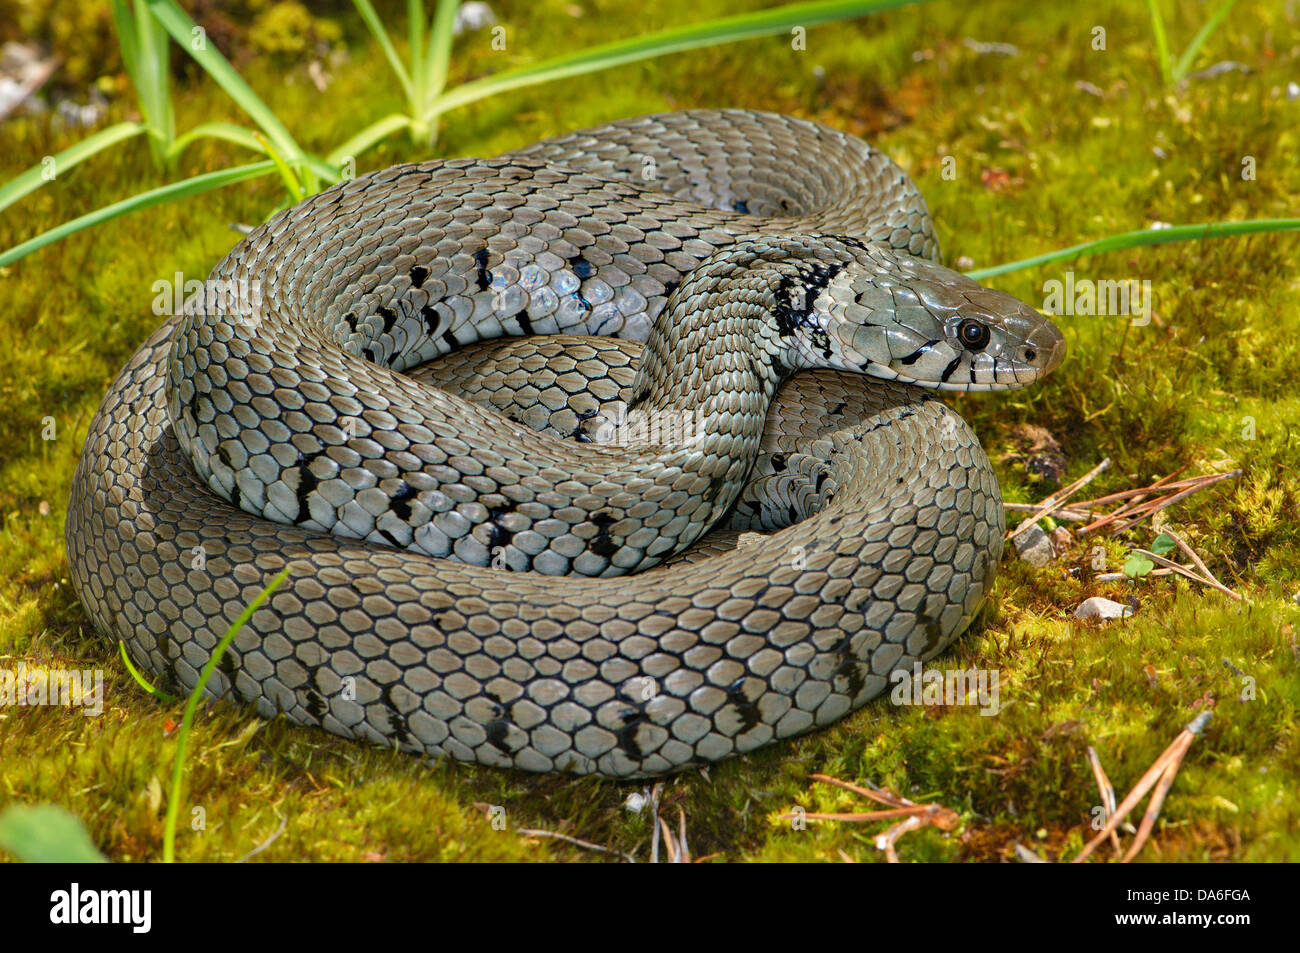 Grass snake, colubrid, colubrids, Natrix natrix helvetica, snake, snakes, reptile, reptiles, general view, protected, - Stock Image